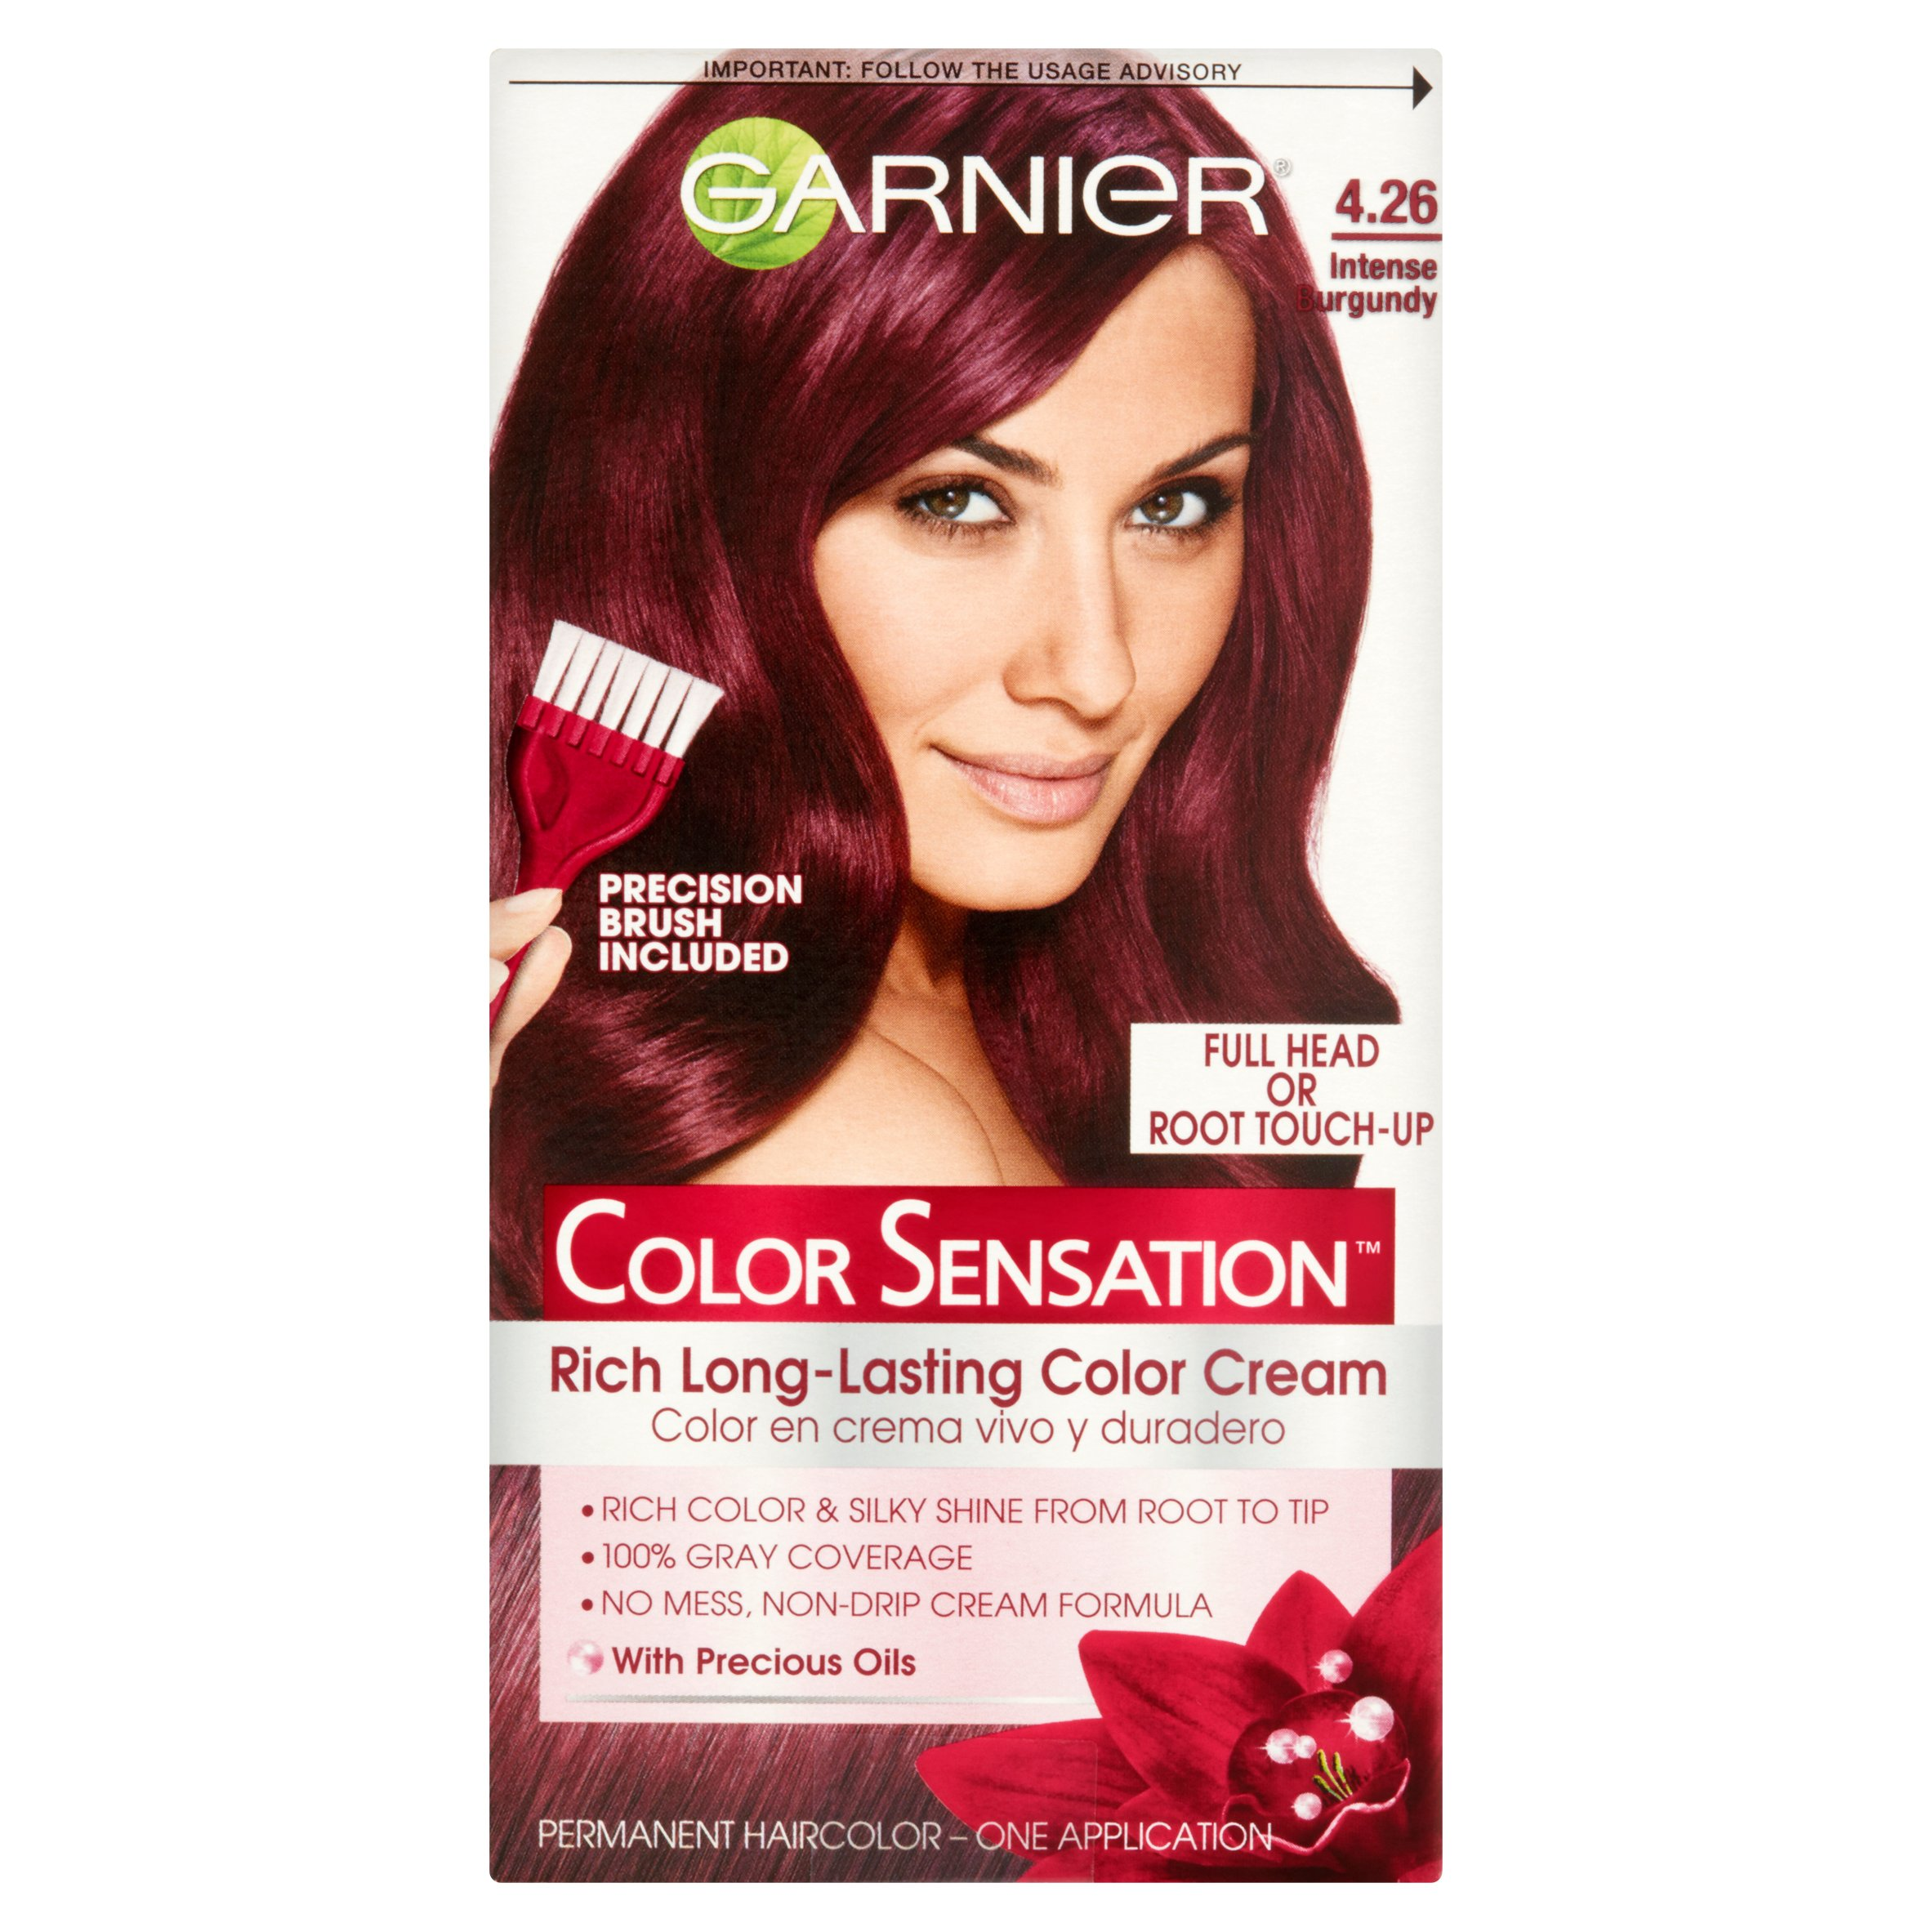 Garnier Color Sensation Permanent Hair Color